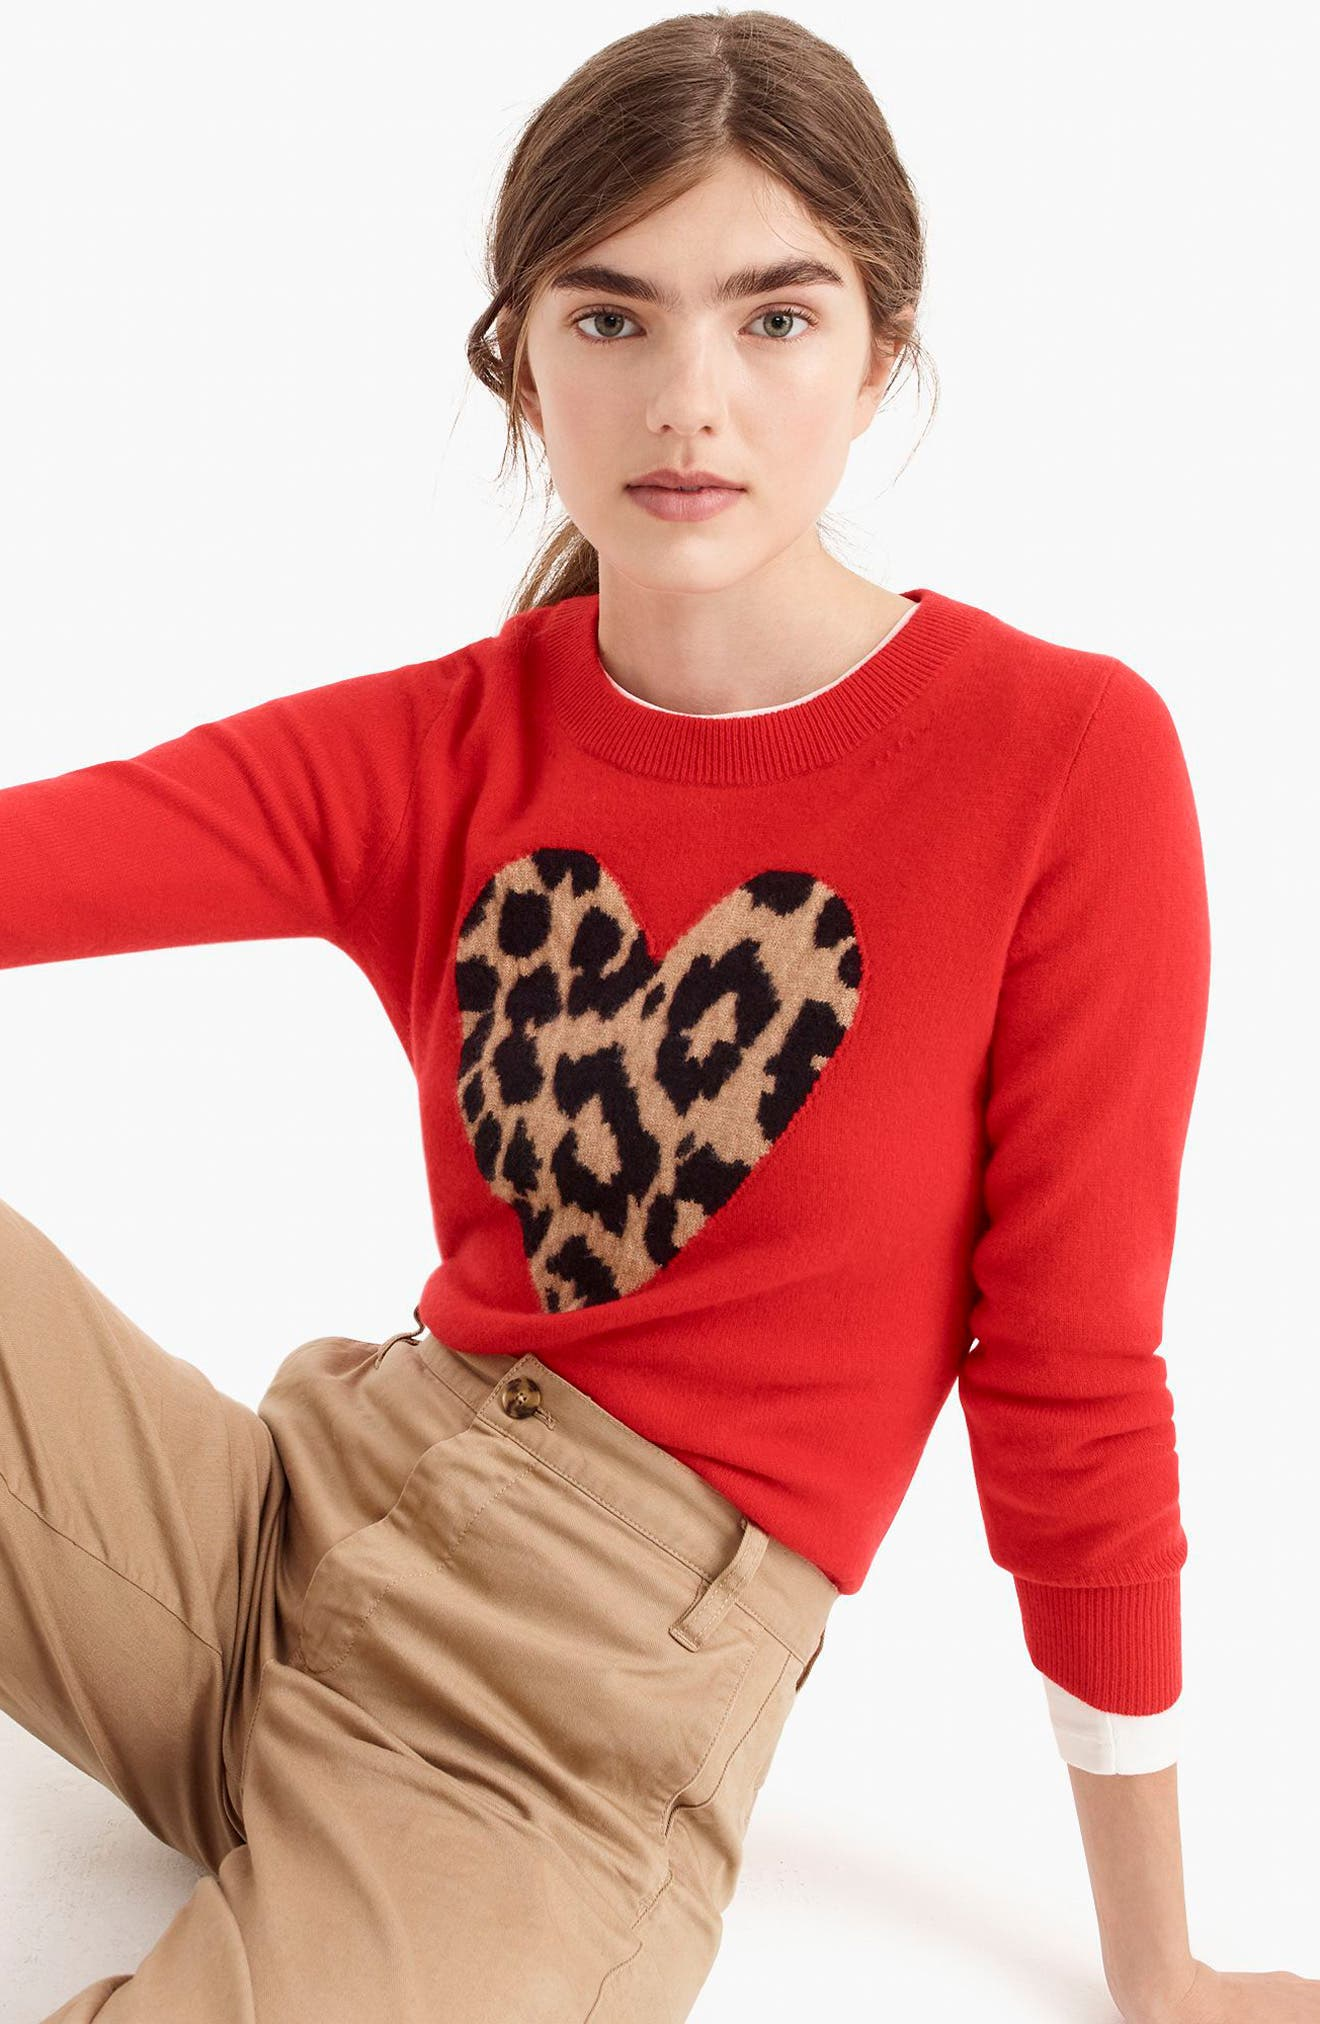 Leopard Heart Everyday Cashmere Sweater,                             Alternate thumbnail 14, color,                             600